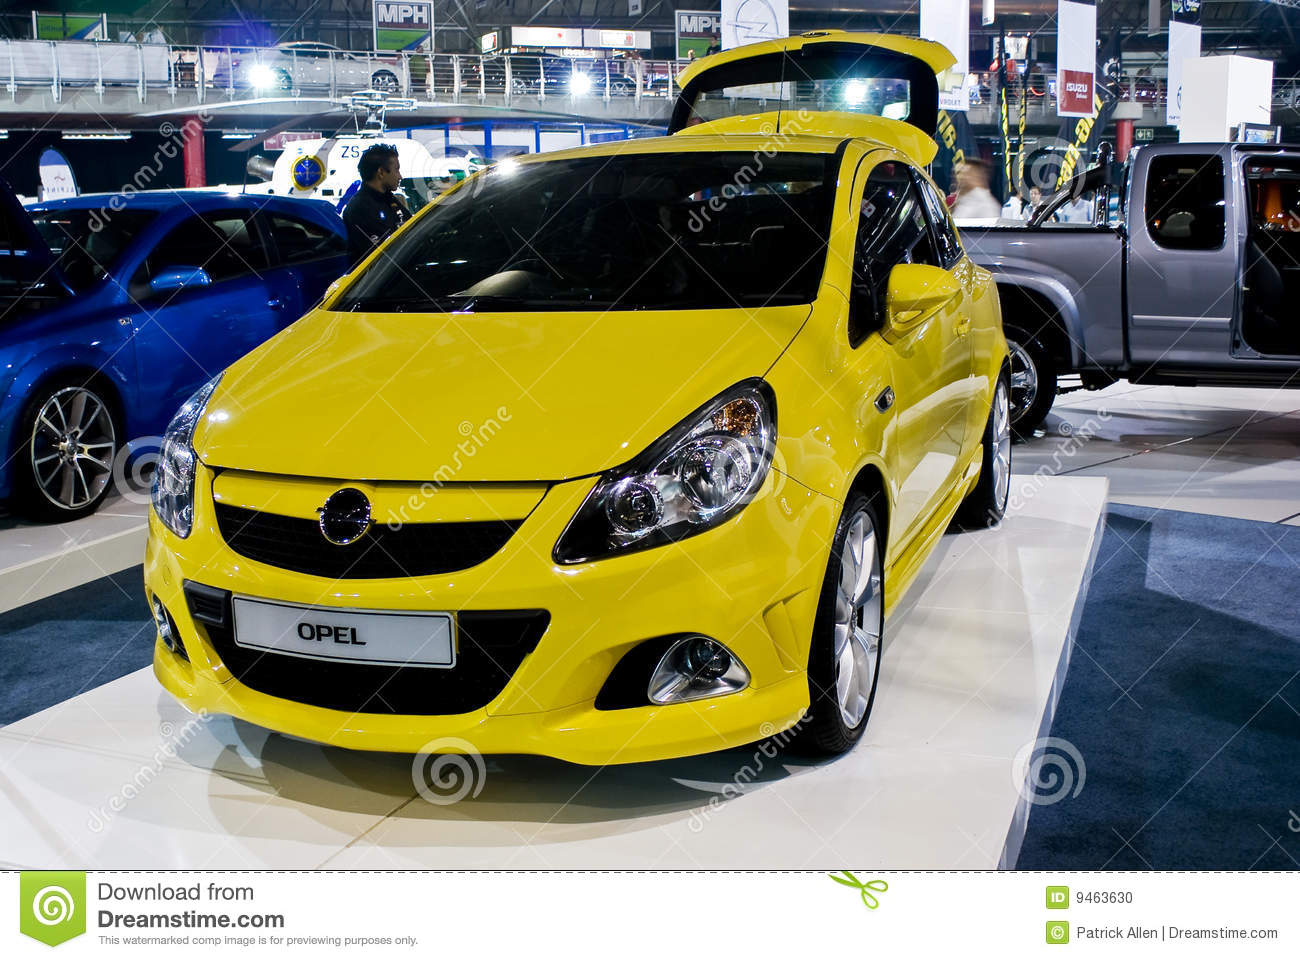 Corsa coupe front mph opel